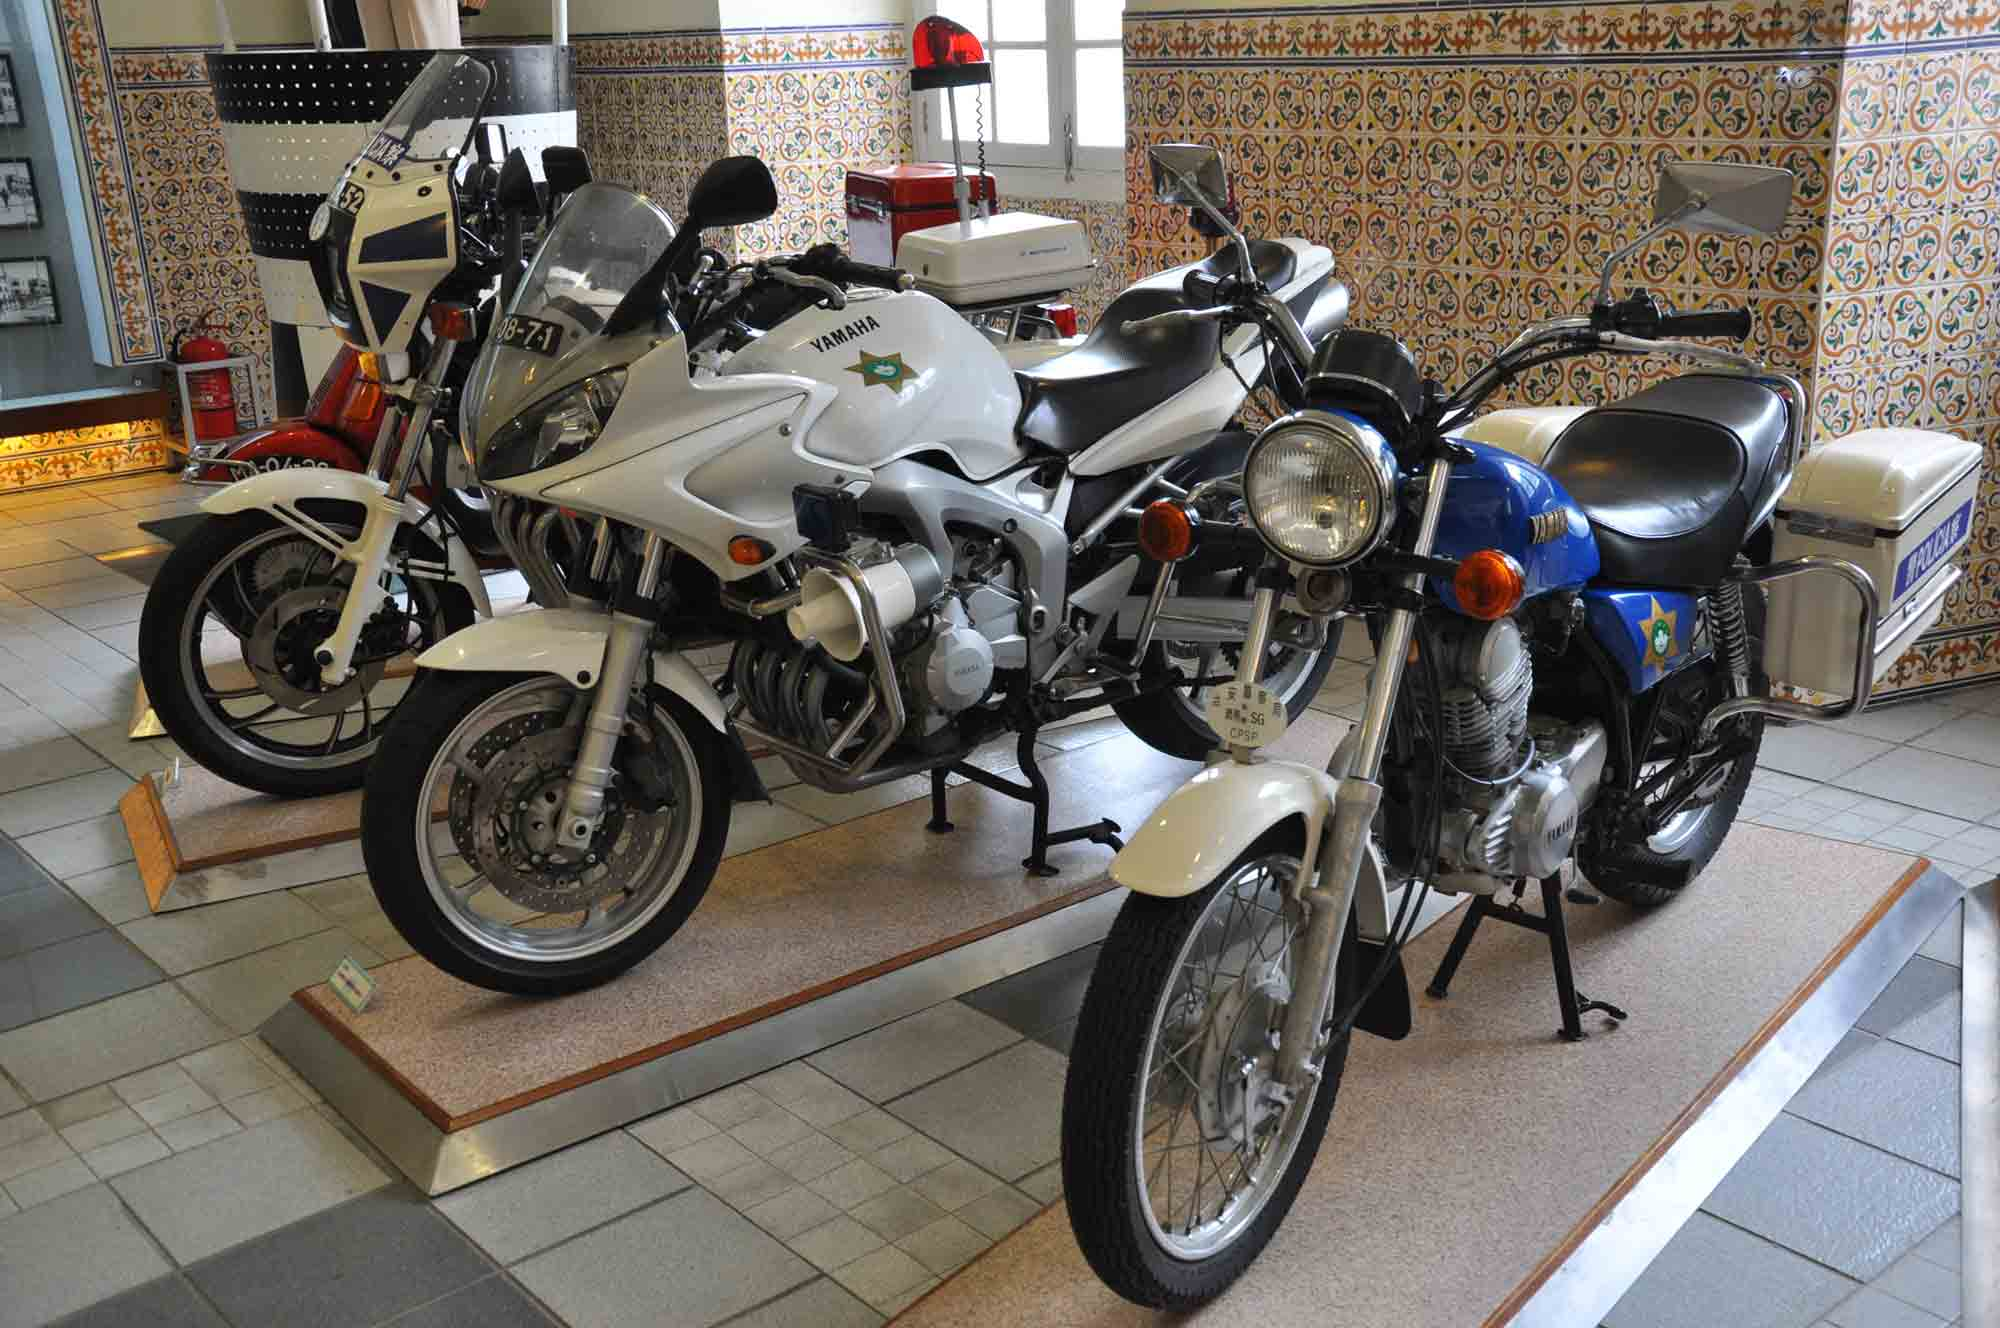 Museum of Public Security Forces police motorcycles